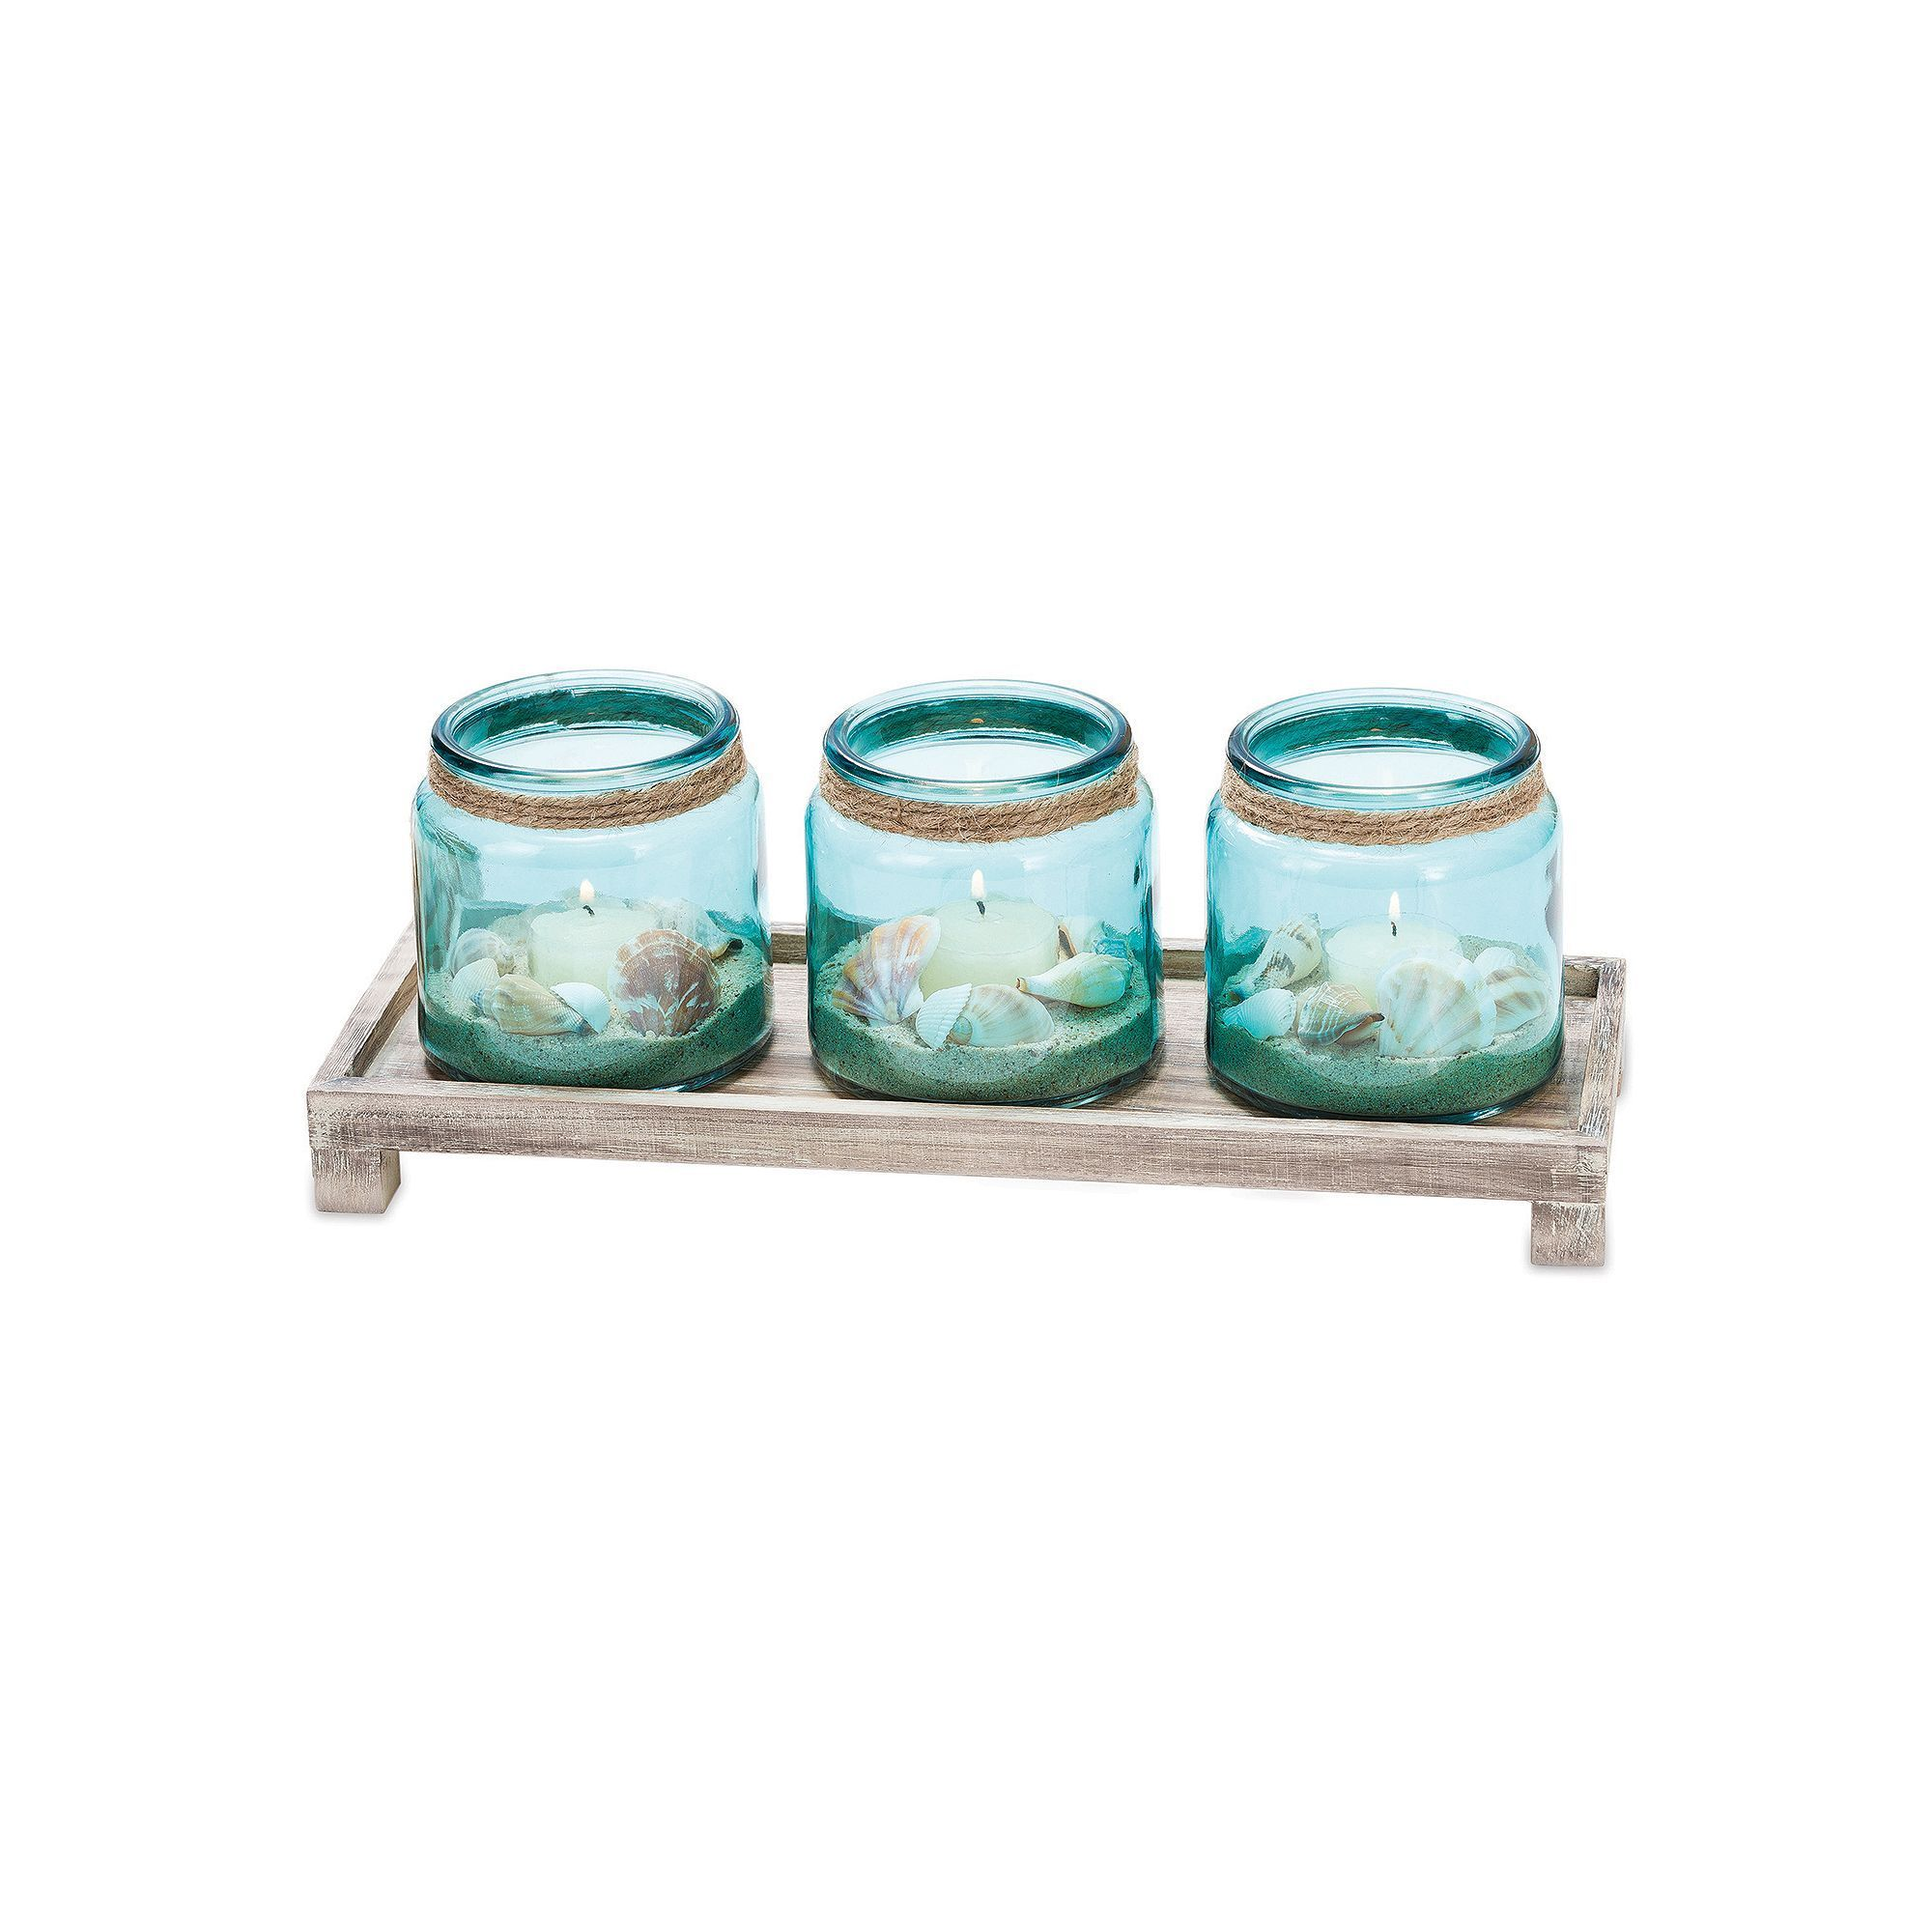 San miguel waverly candle tray decor multicolor products